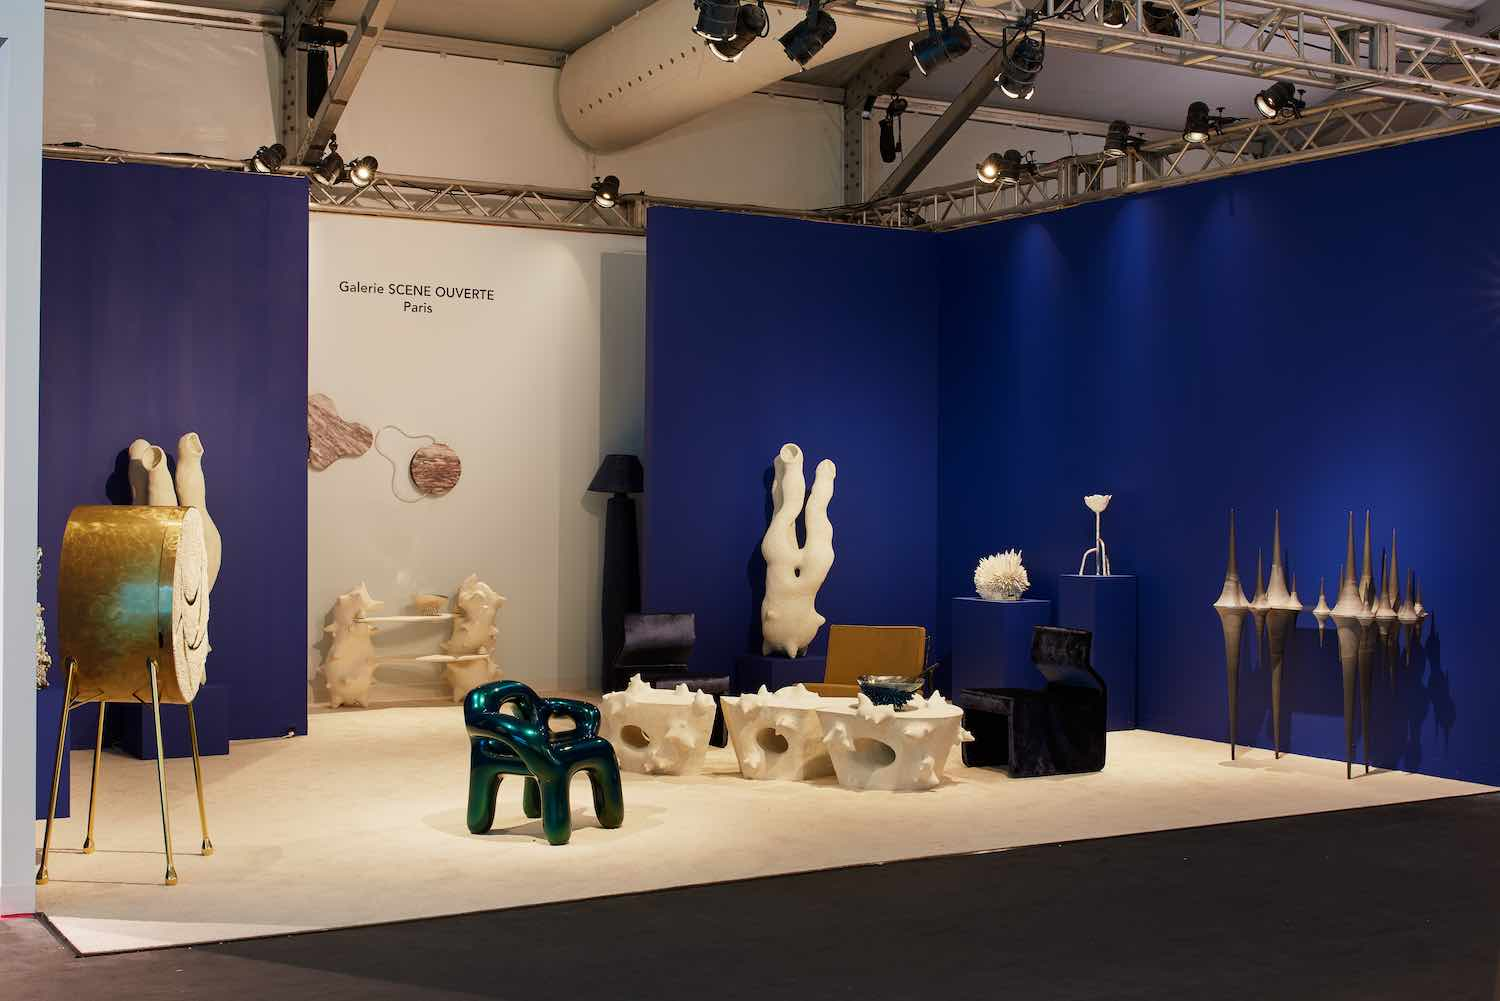 Galerie SCENE OUVERTE @ DesignMiami - Photo by James Harris